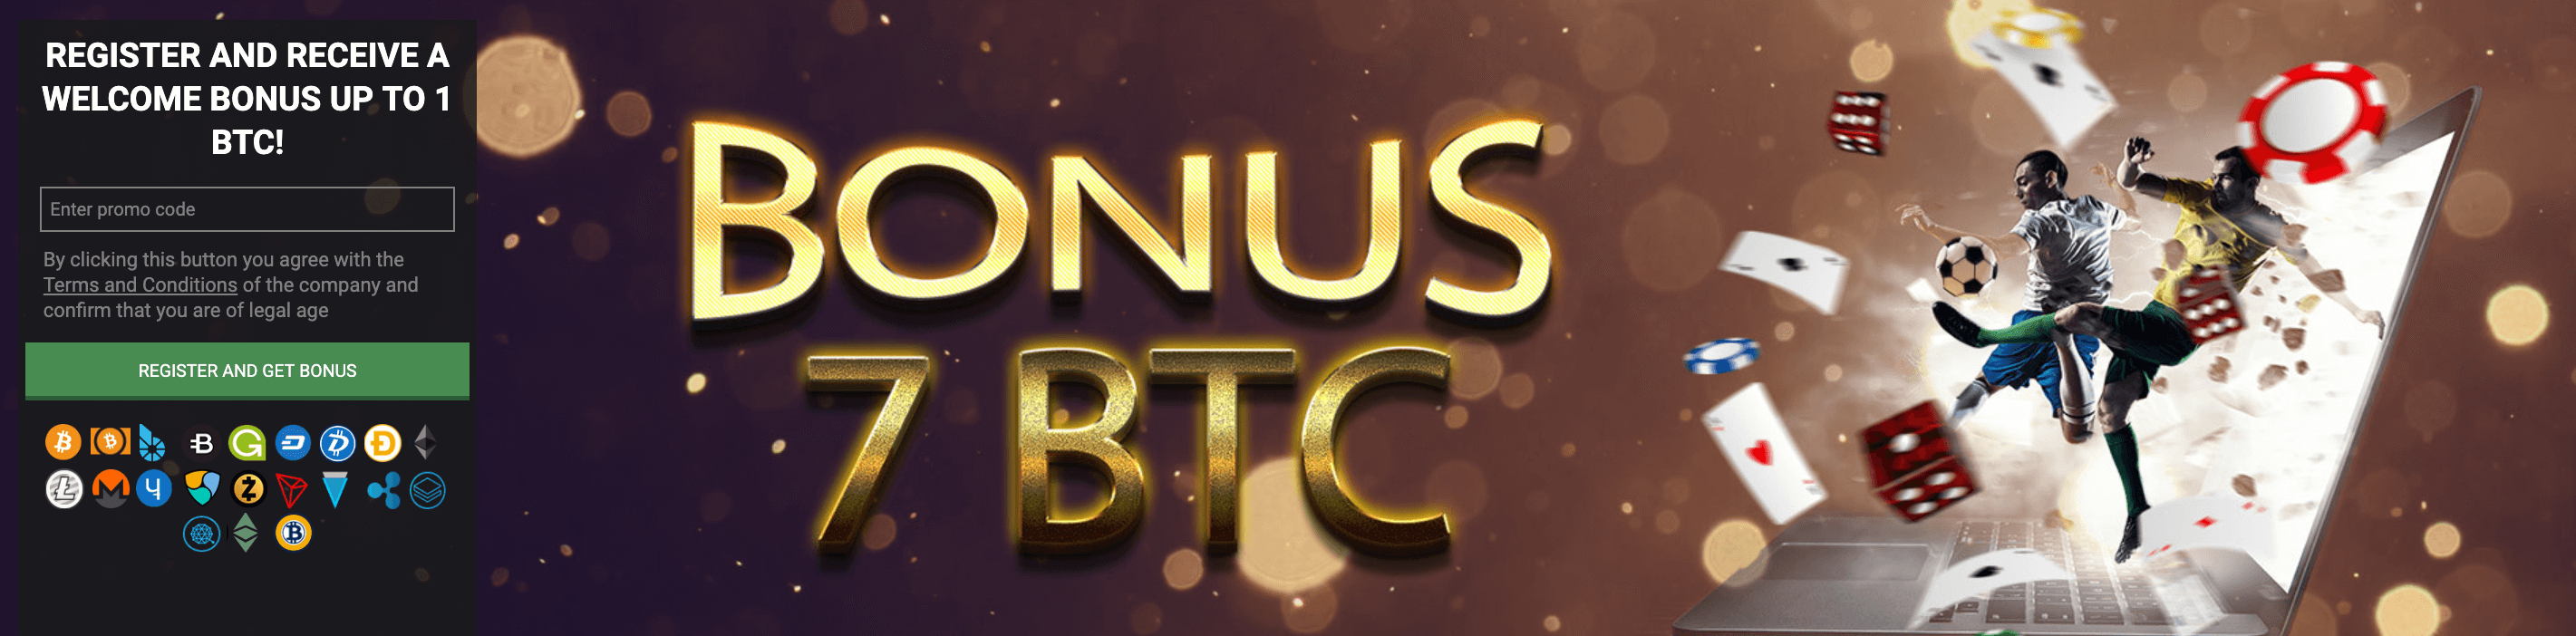 1xbit welcome bonus